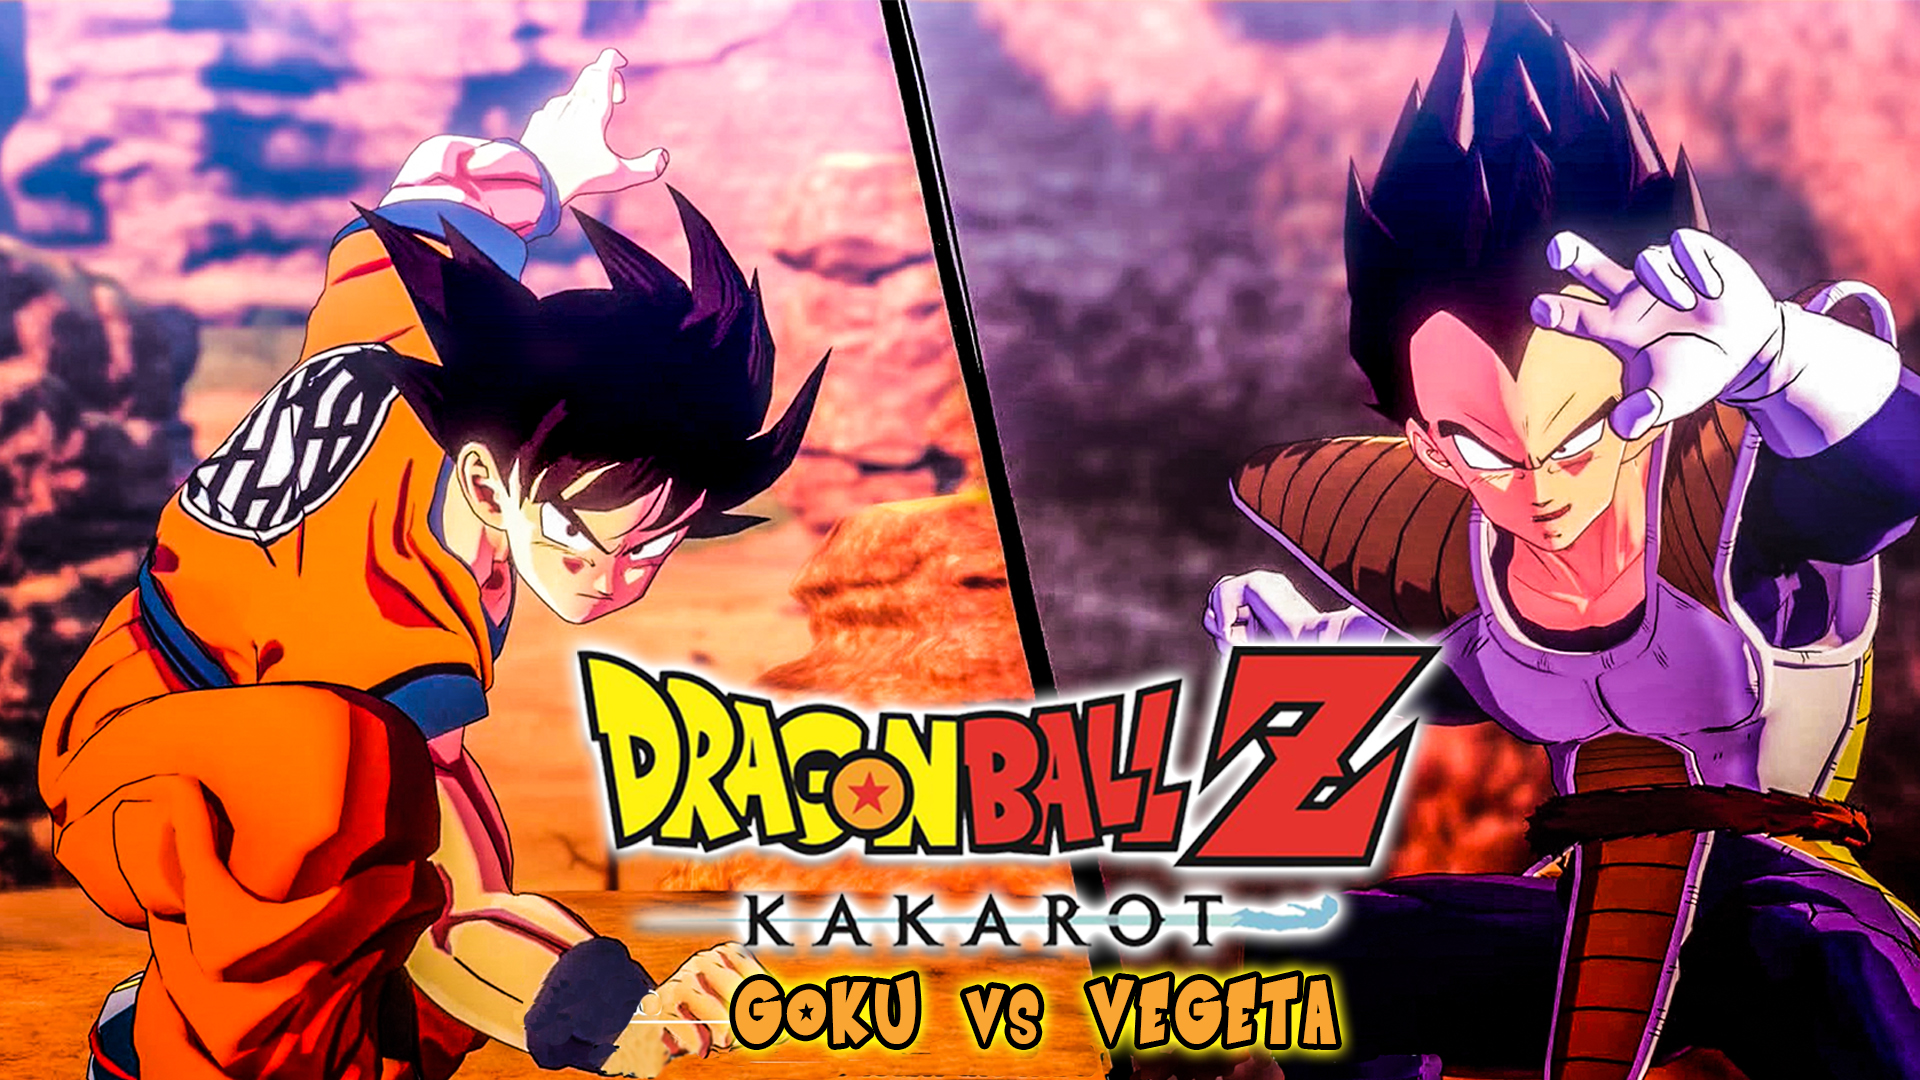 Watch Clip Dragon Ball Z Kakarot Gameplay Pt 2 Goku Vs Vegeta Prime Video